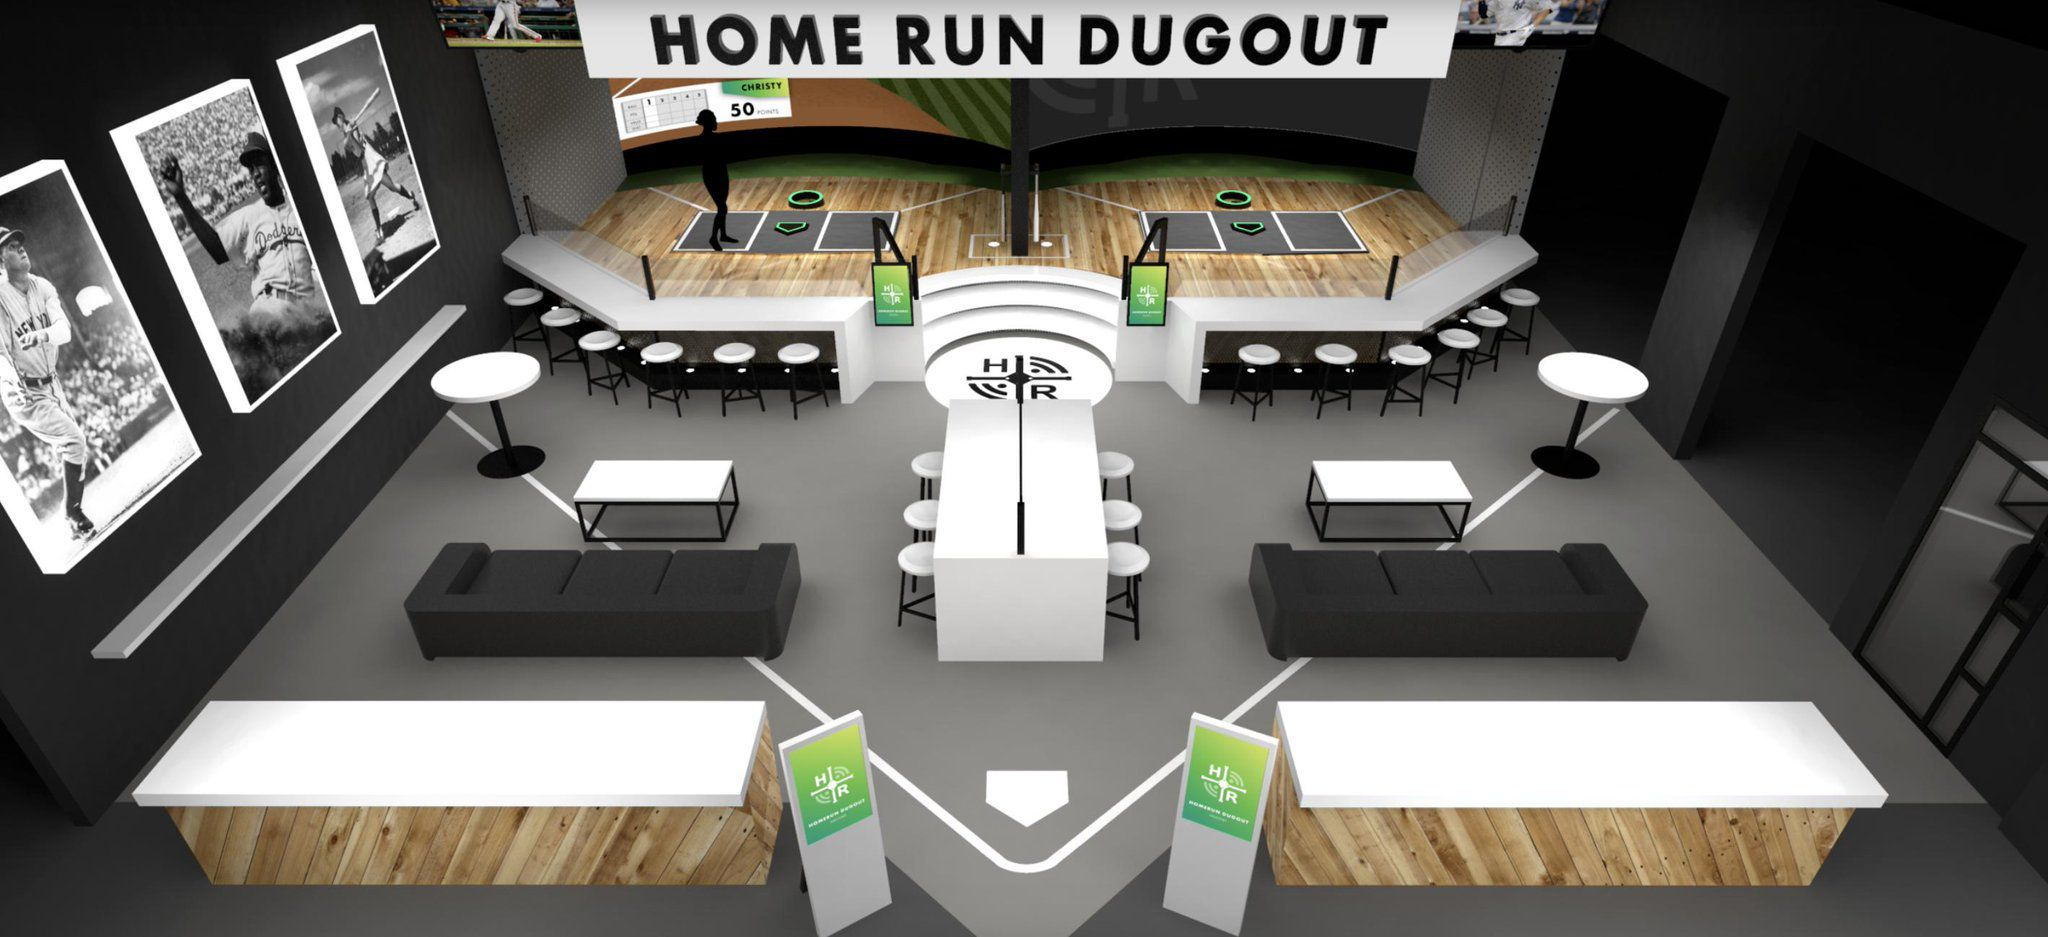 Home Run Dugout, the future of batting cages?